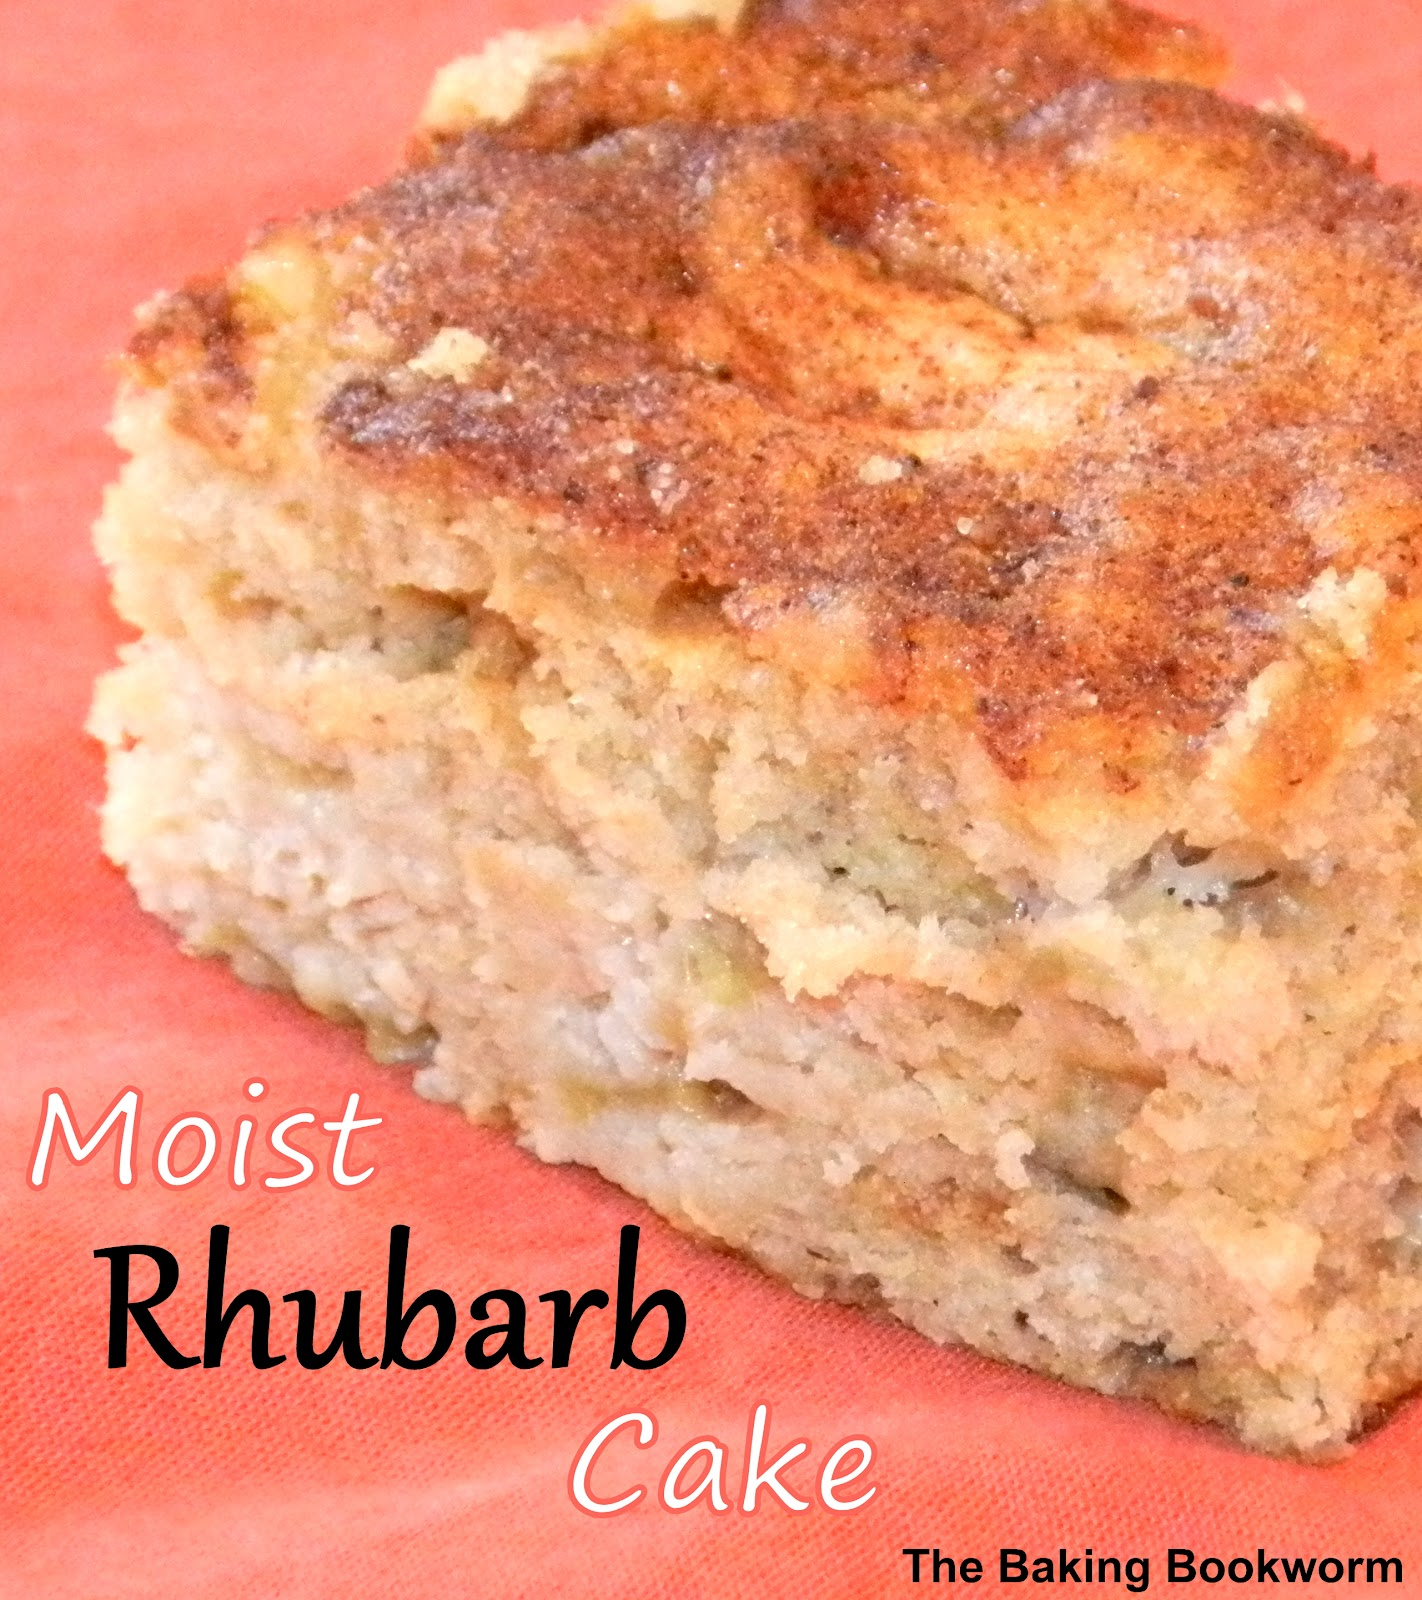 The Baking Bookworm: Moist Rhubarb Cake